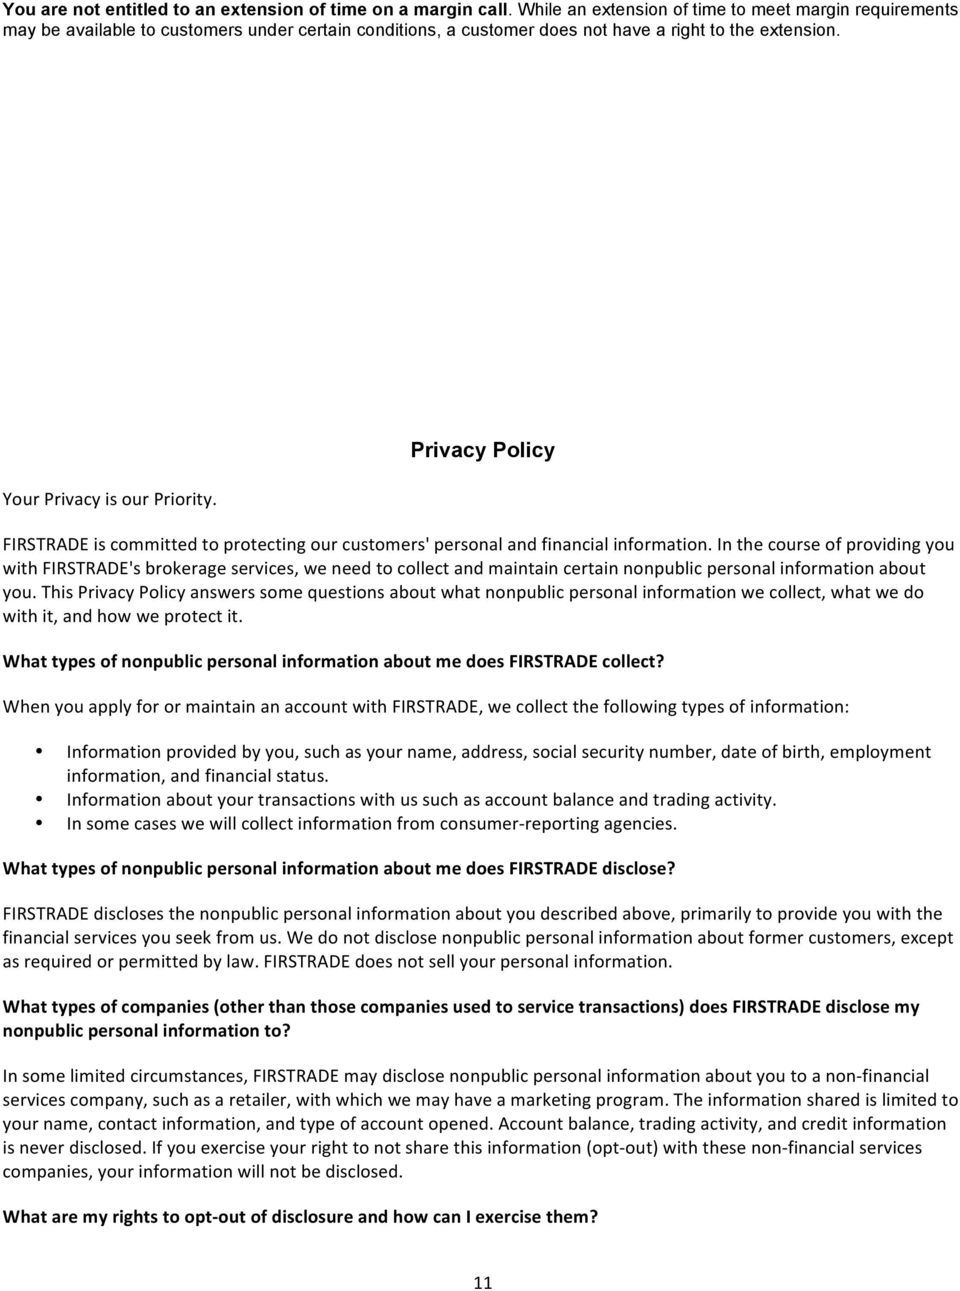 Privacy Policy FIRSTRADE is committed to protecting our customers' personal and financial information.